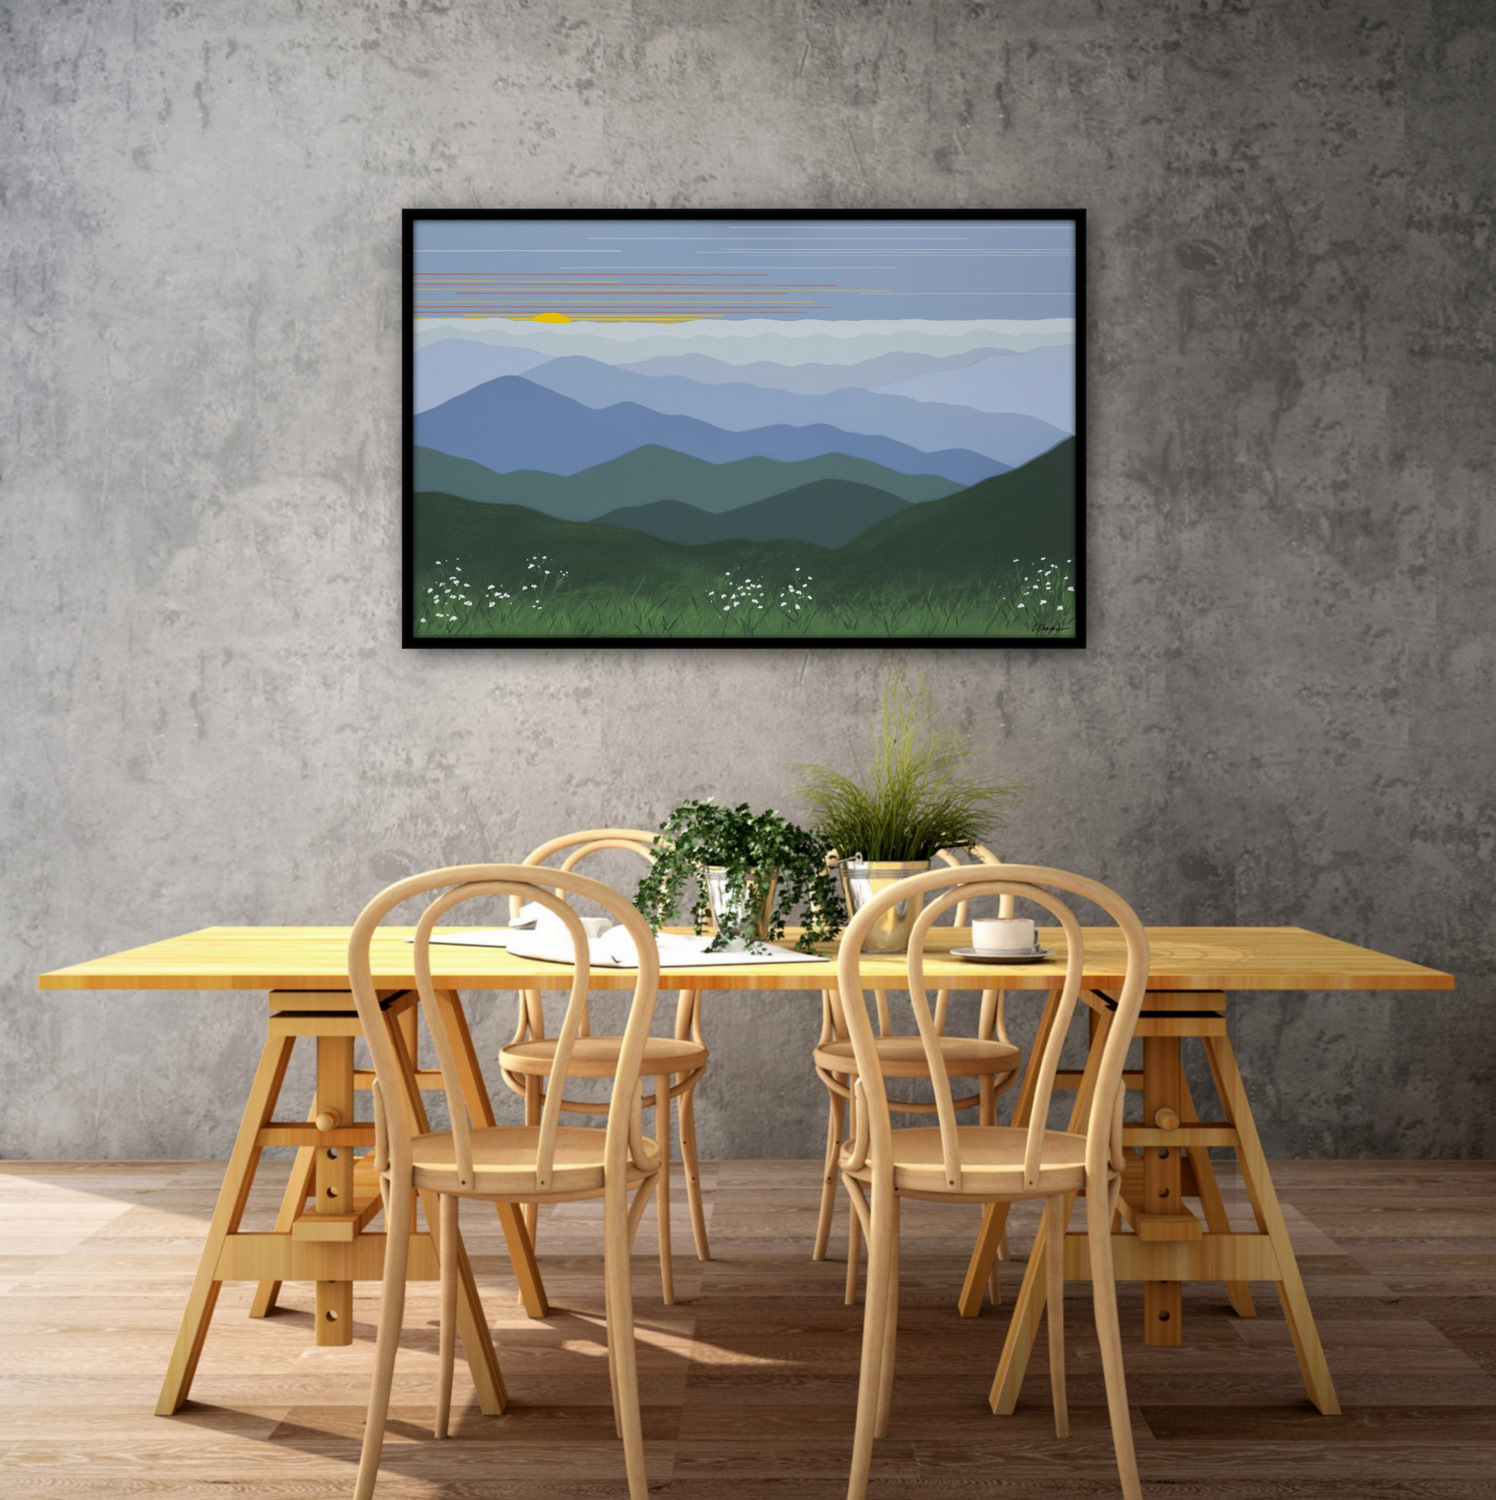 Commission Dimensional Landscape Paintings, Cindy Lou Chenard, Asheville, North Carolina-024.jpg